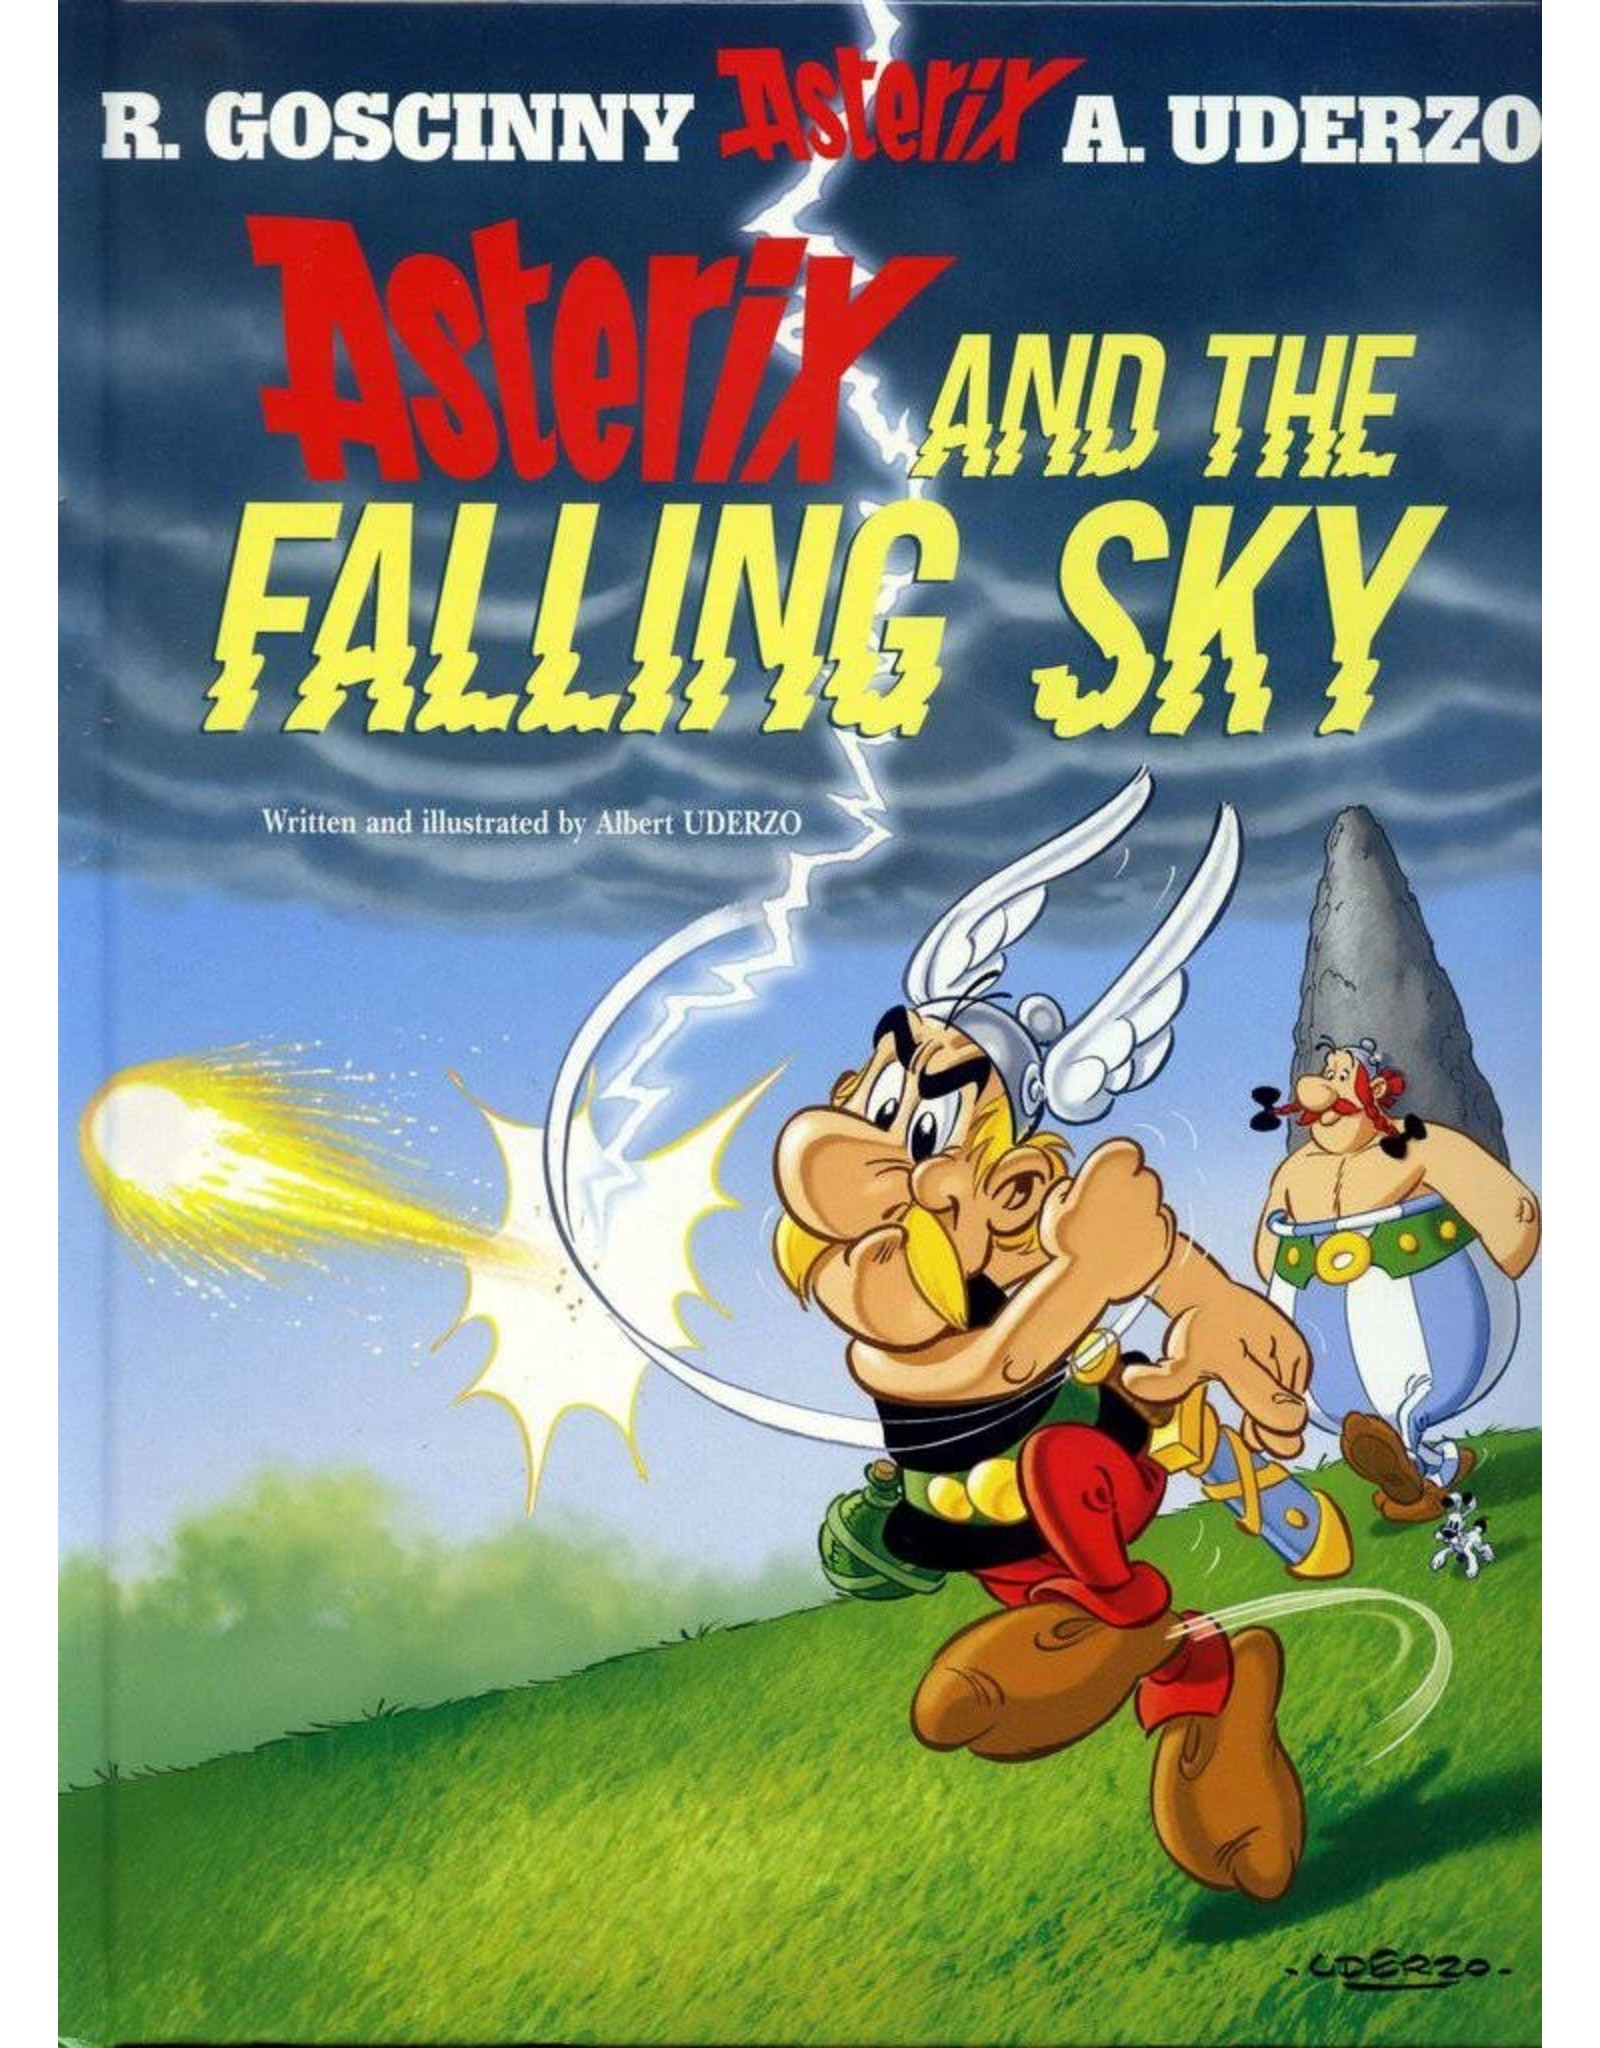 STERLING PUBLISHING ASTERIX TP VOL 33 ASTERIX AND THE FALLING SKY SC